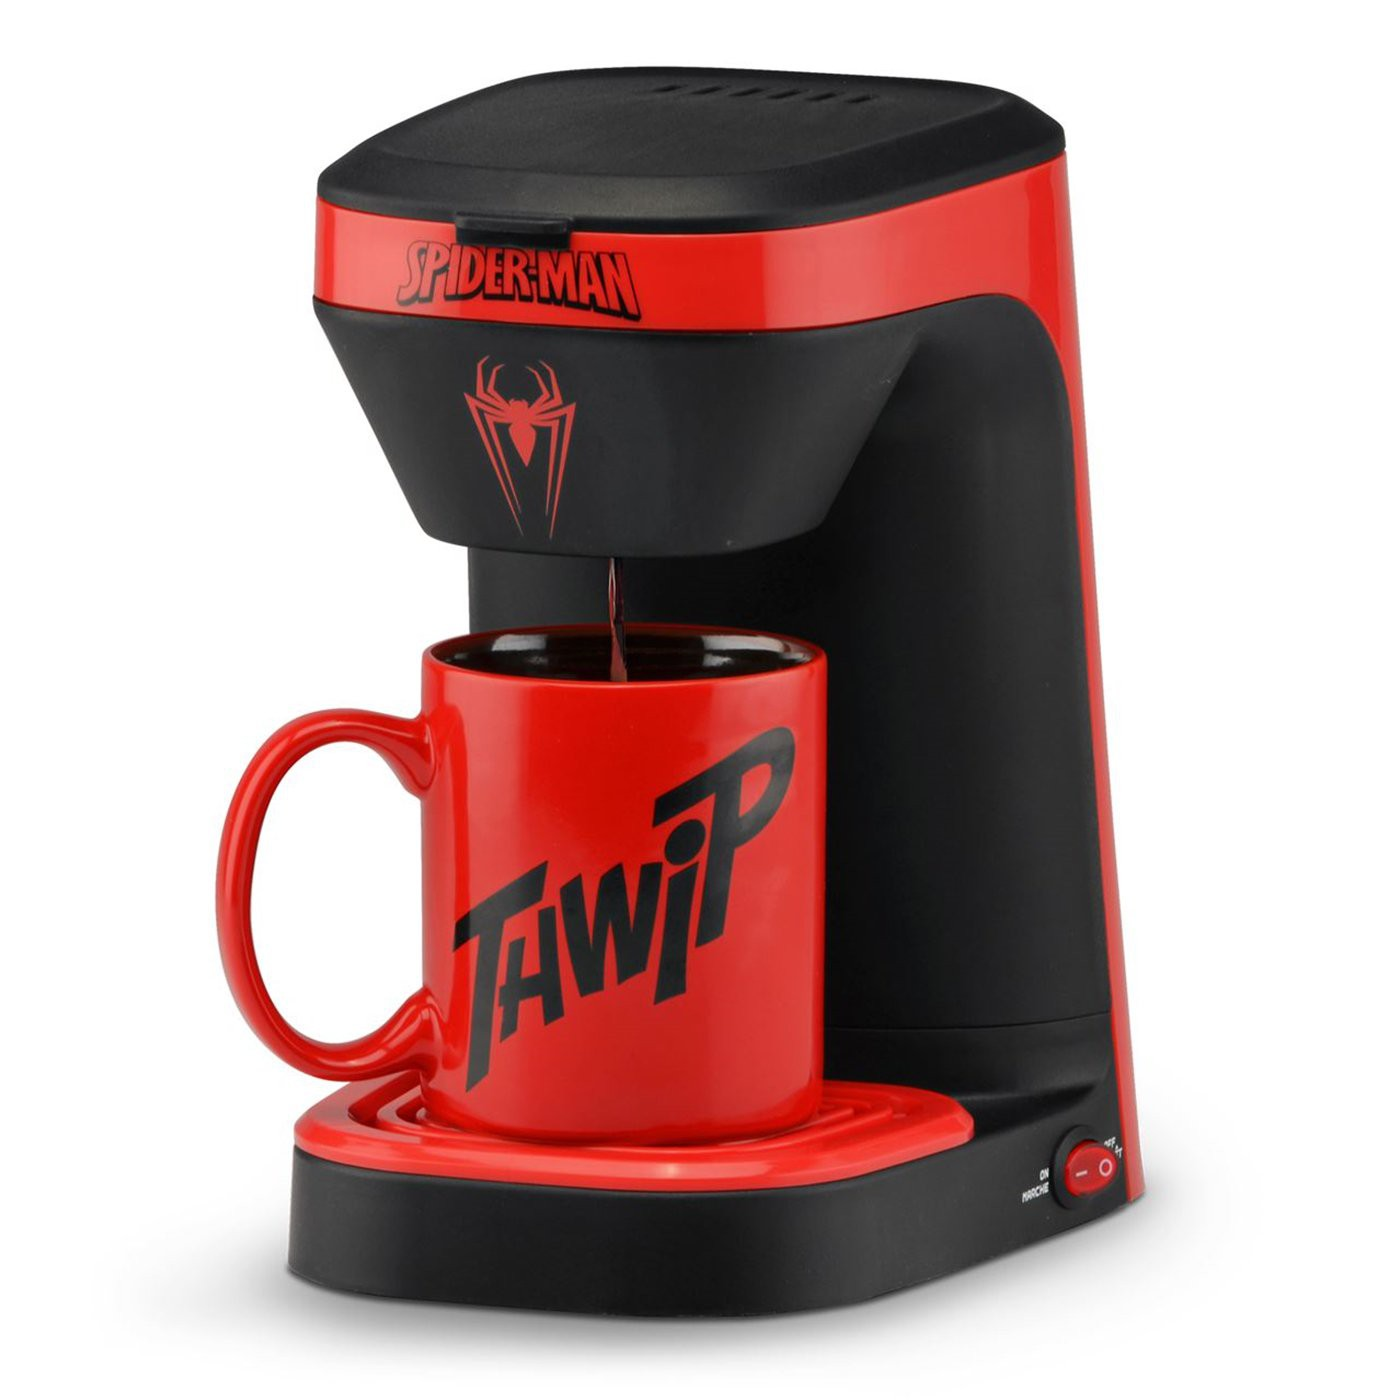 Spider-Man 1-Cup Coffee Maker with Mug